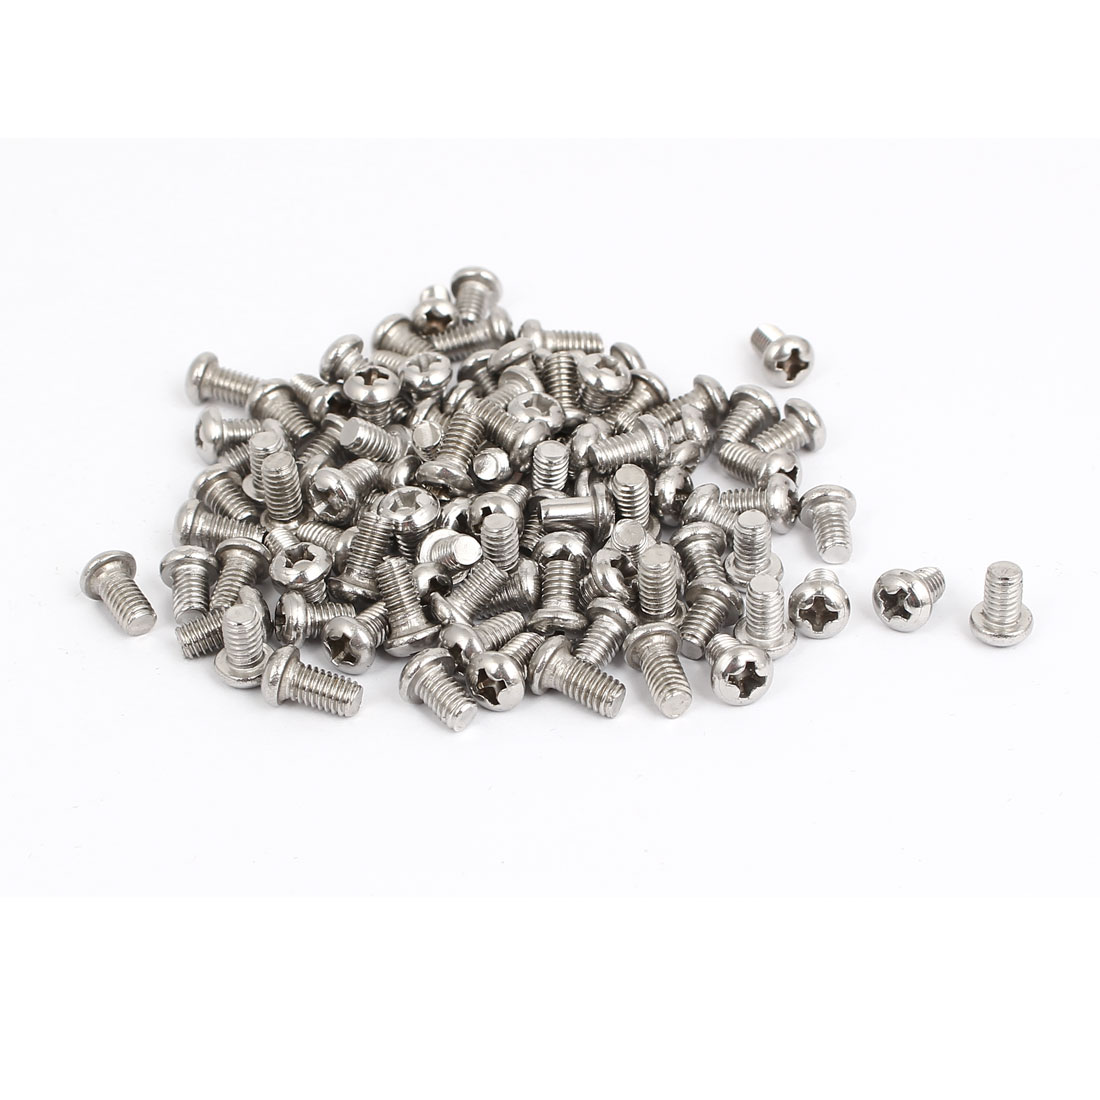 M4x6mm Stainless Steel Phillips Round Pan Head Machine Screws 100pcs